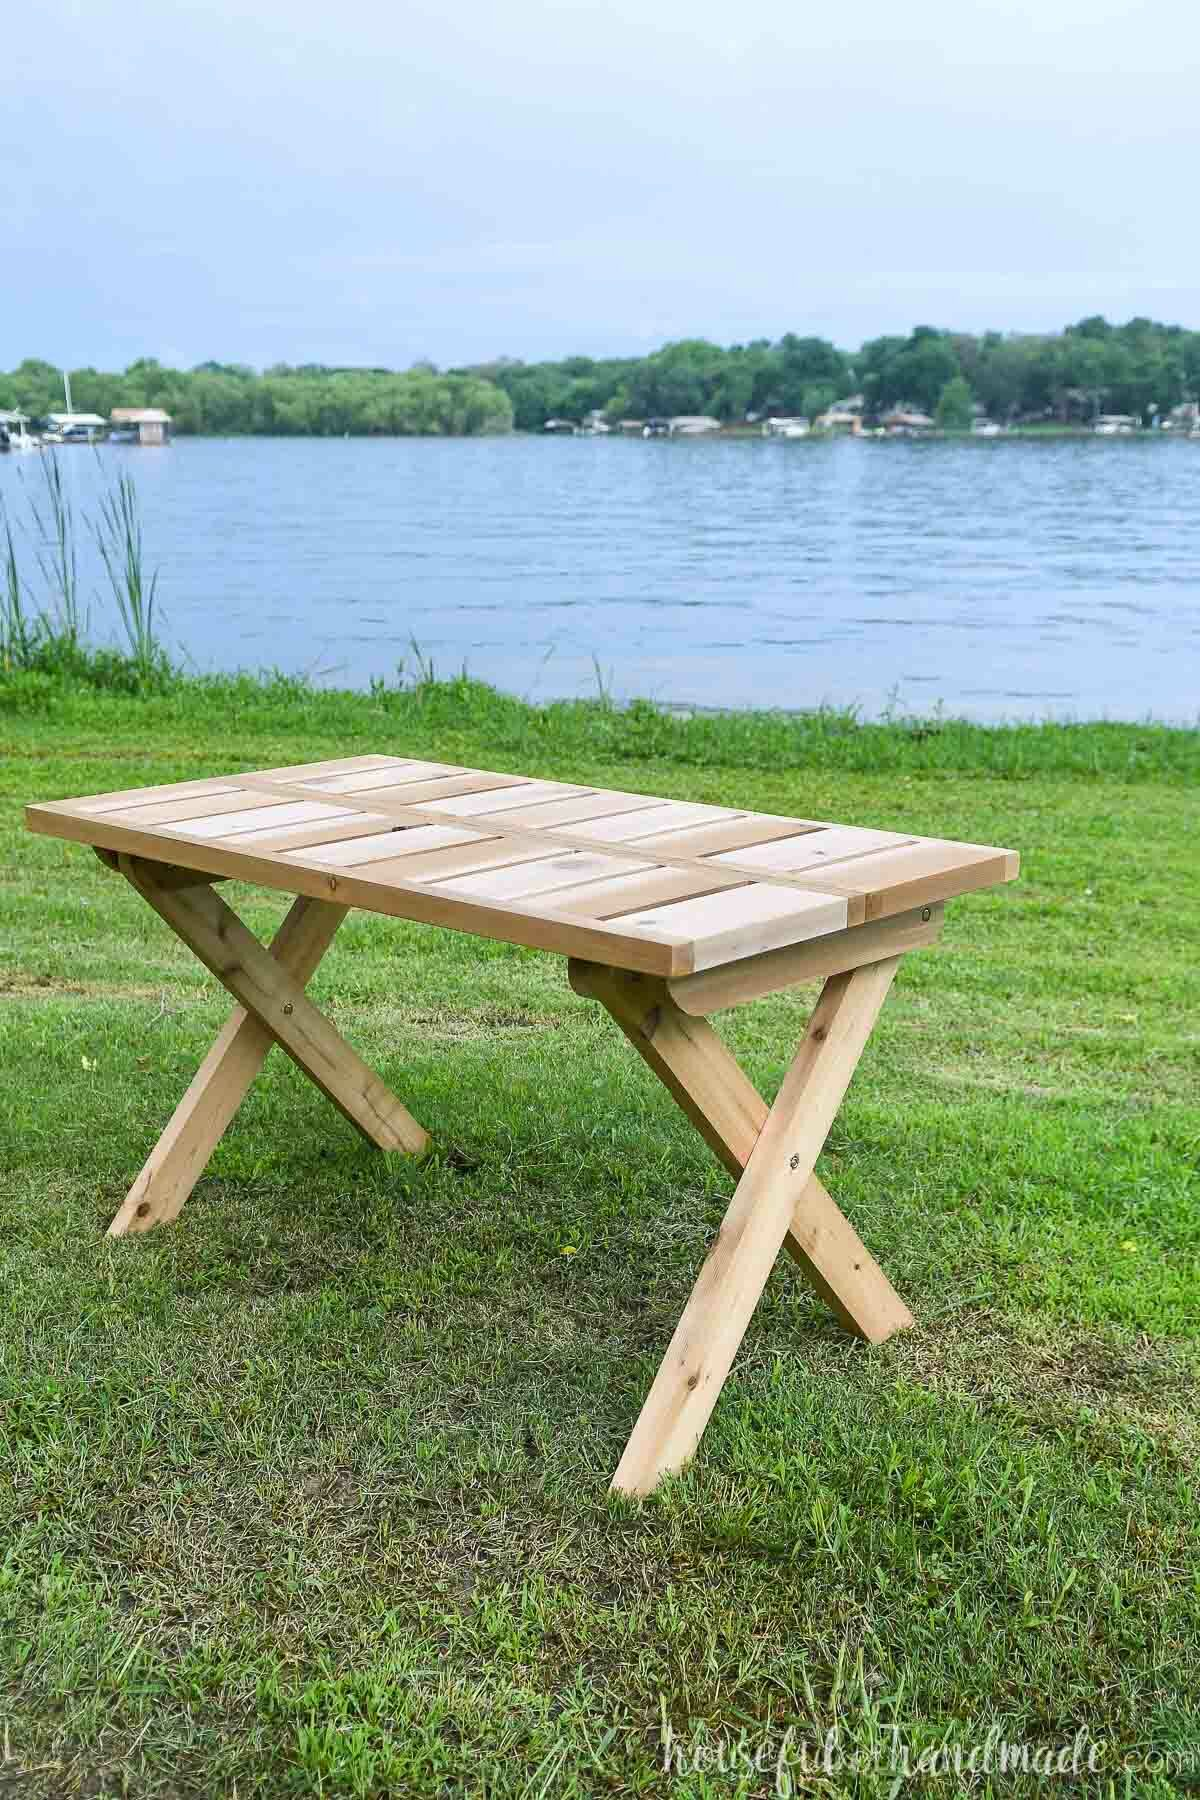 Cedar folding picnic table set up on the grass in front of a lake.